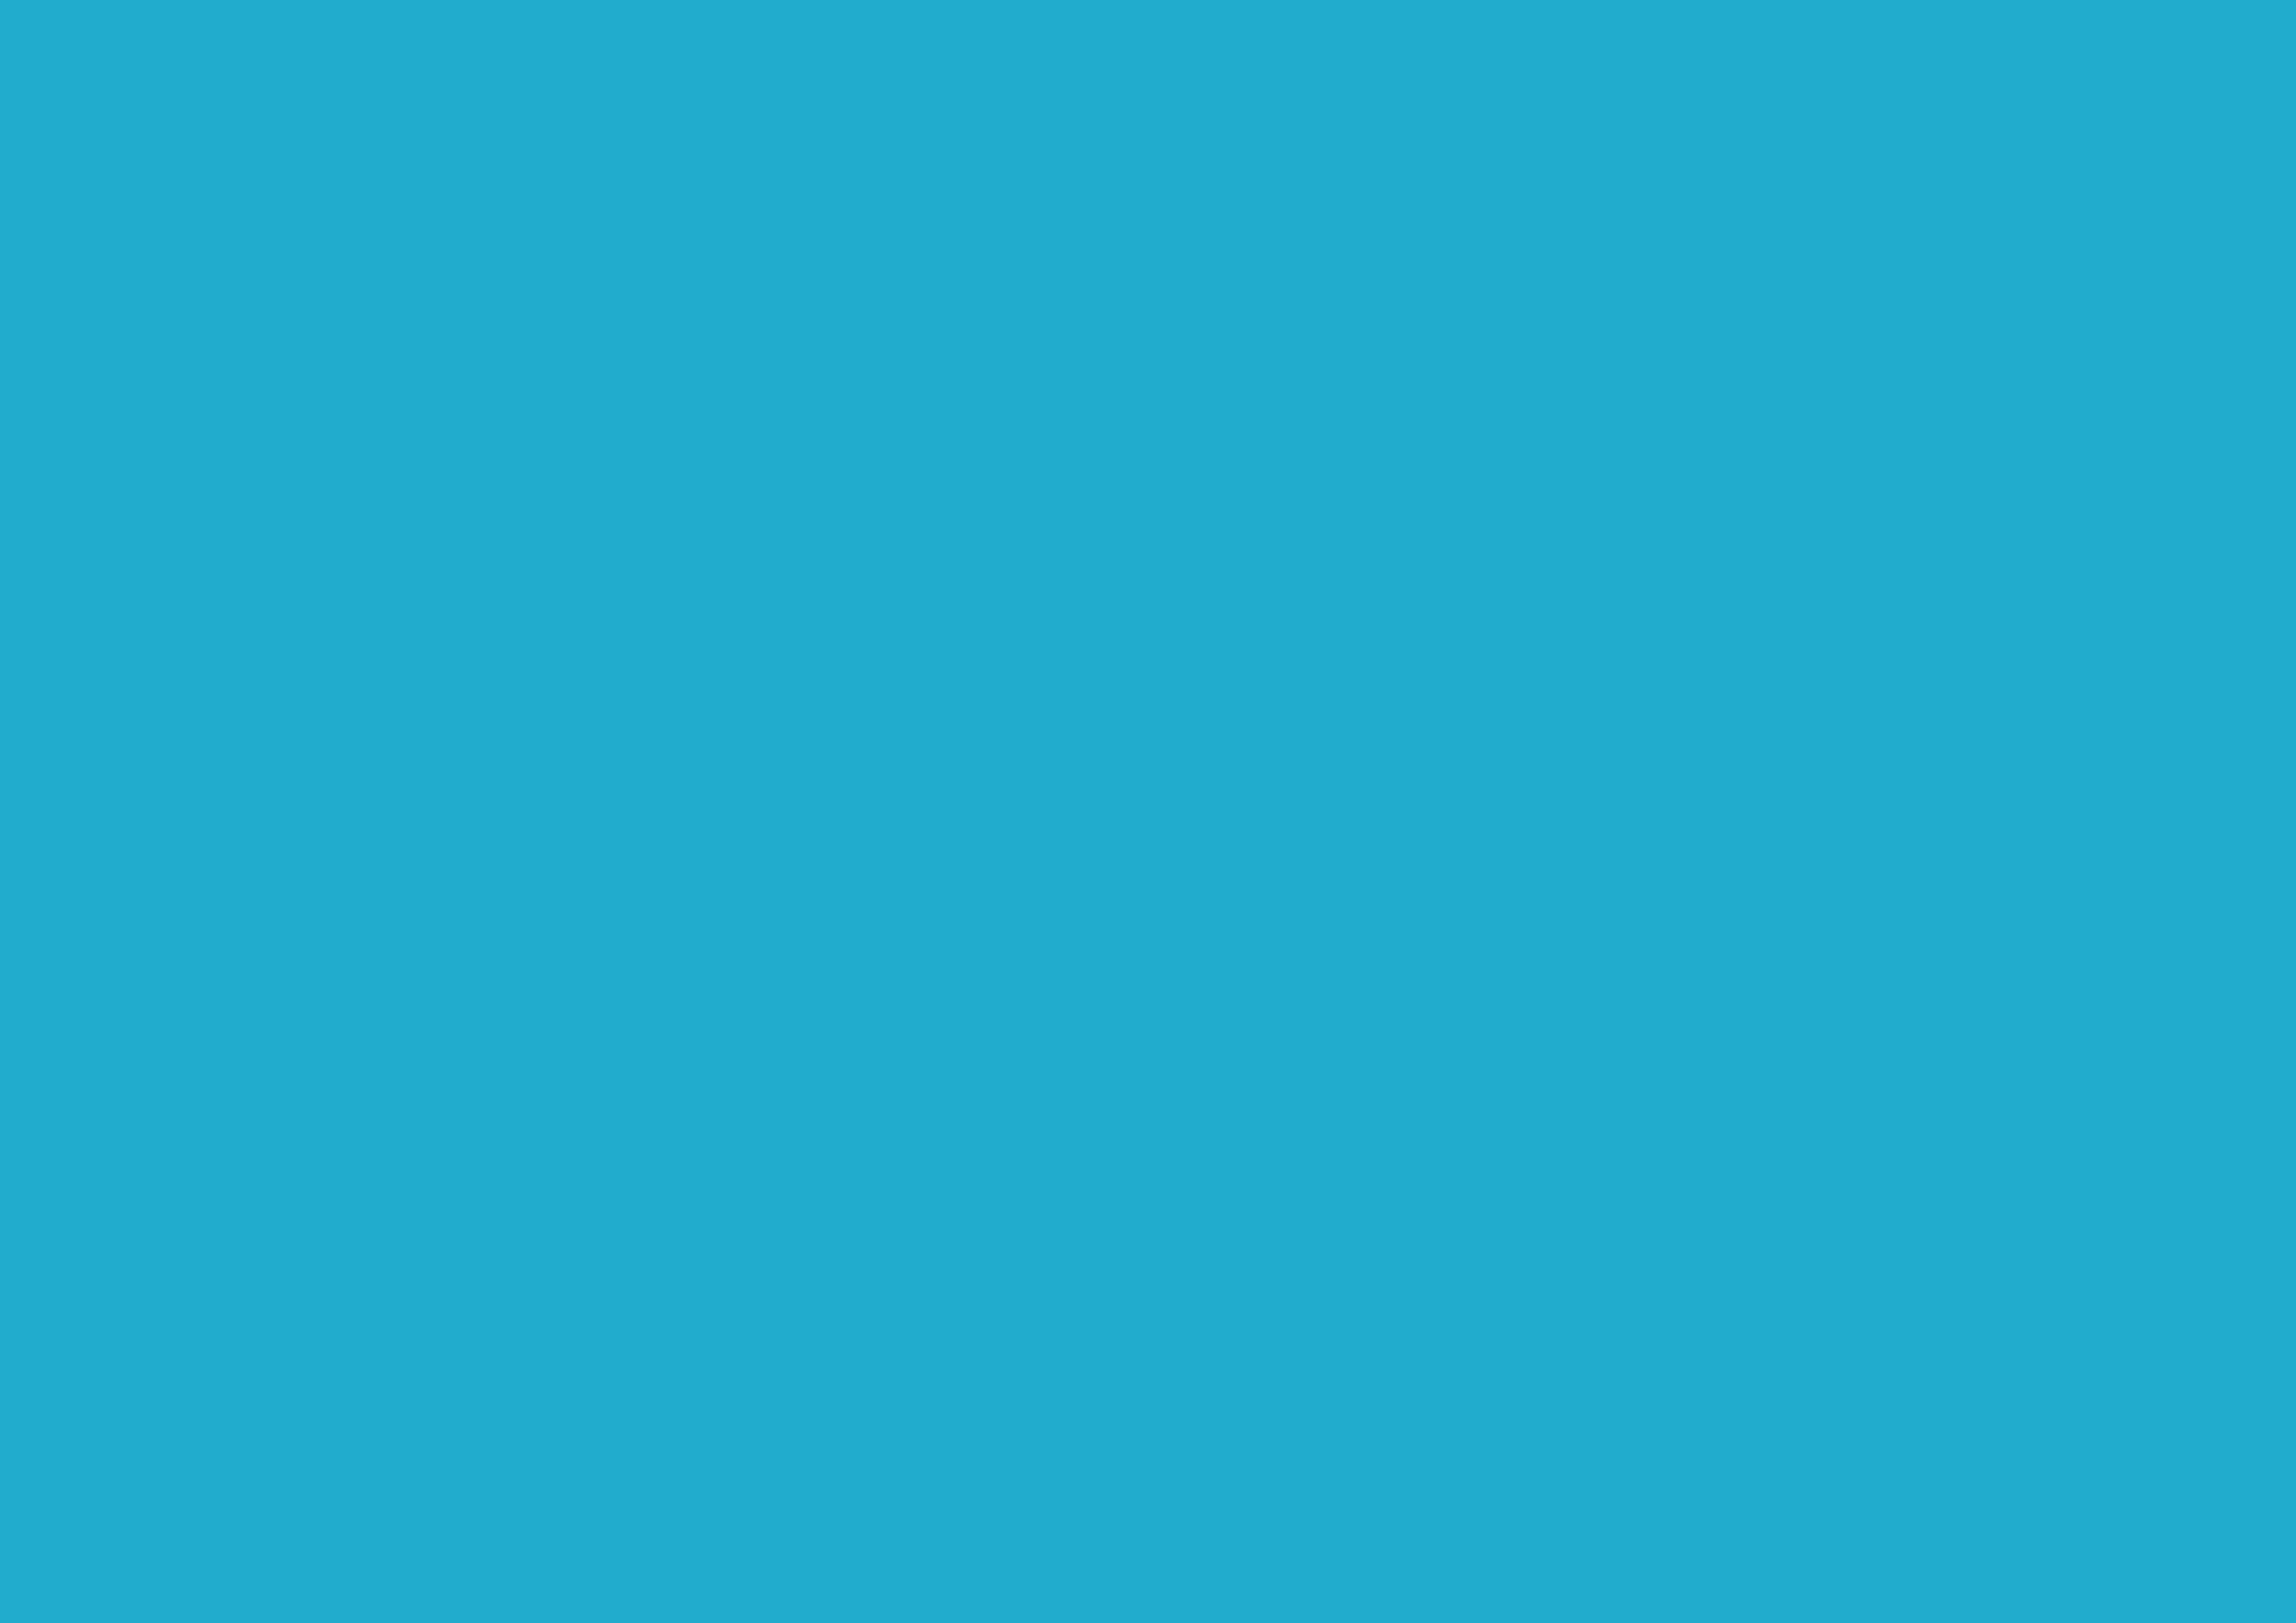 3508x2480 Ball Blue Solid Color Background